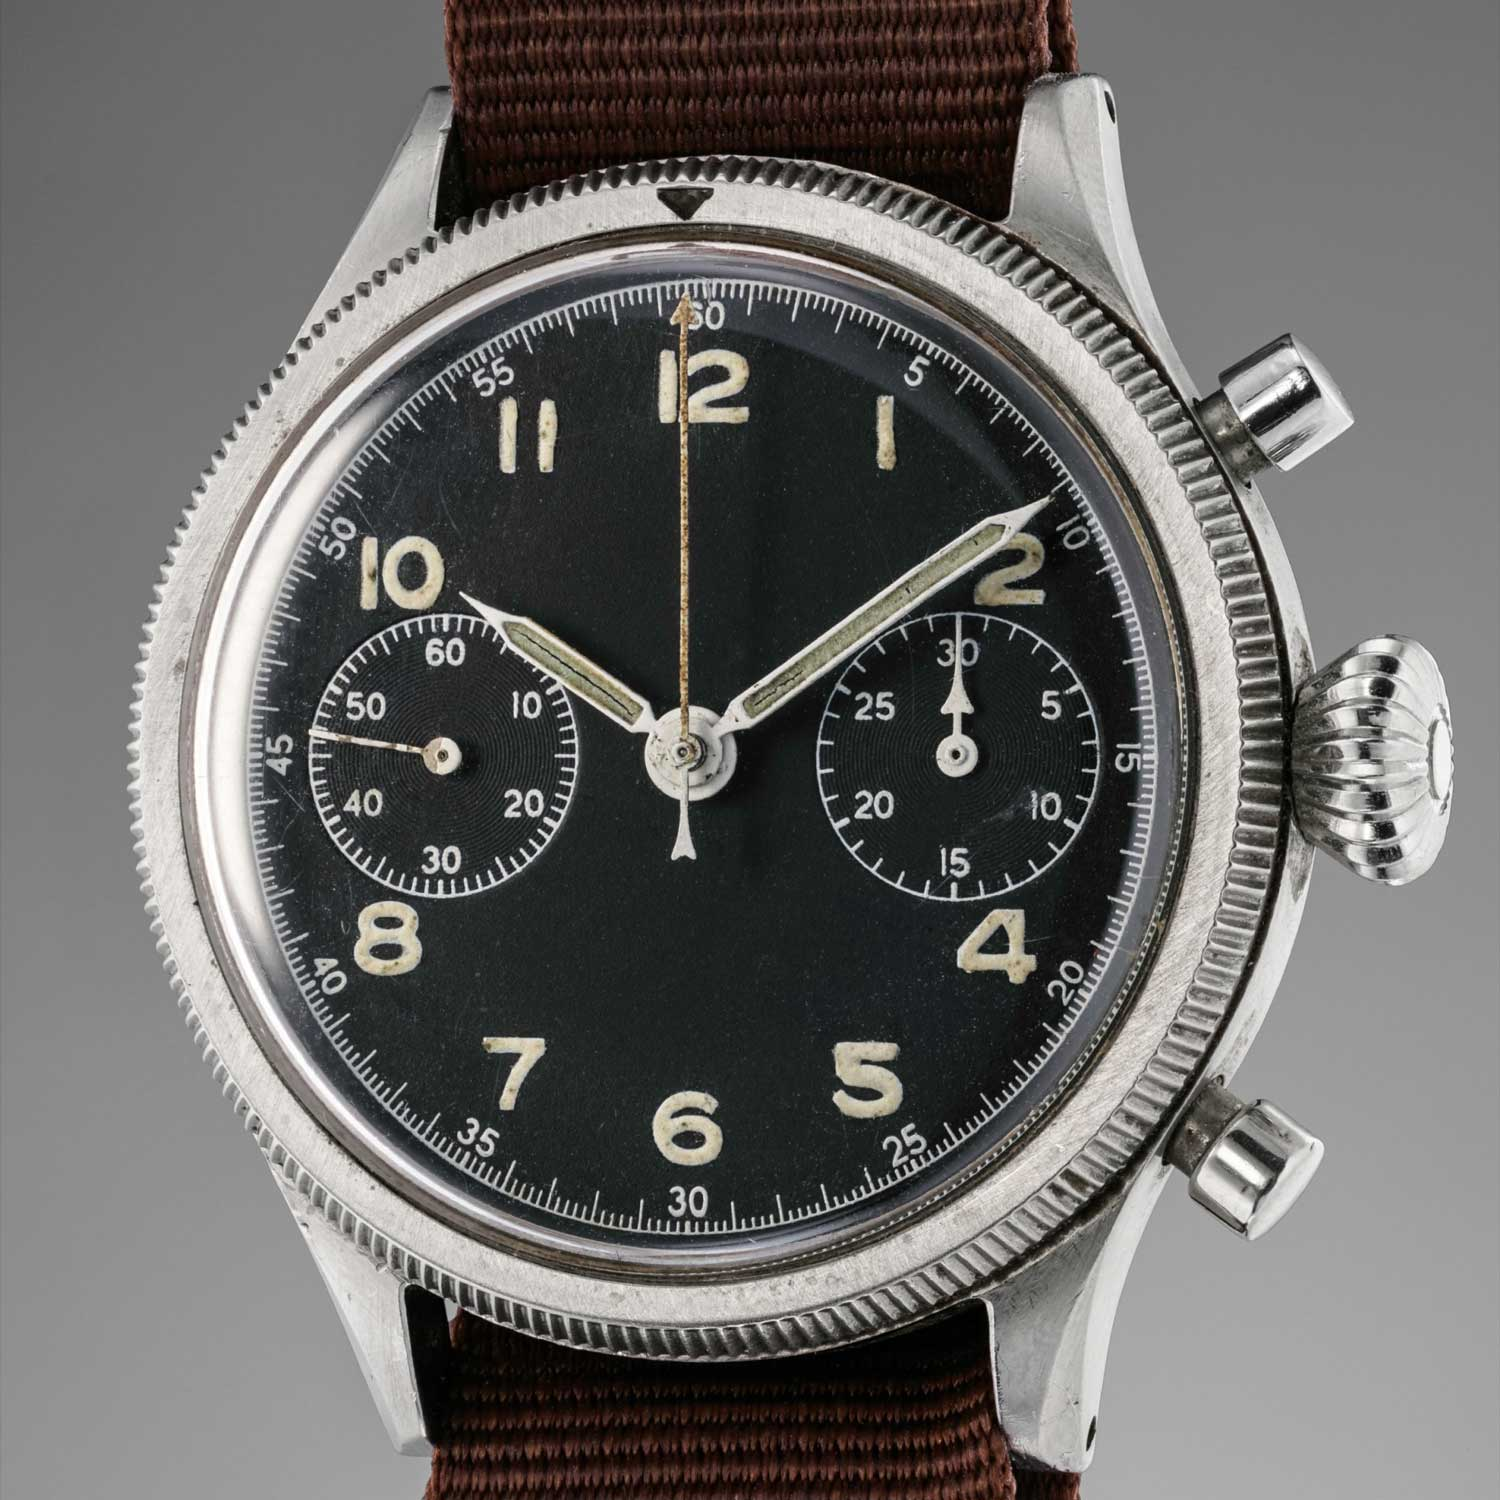 A 1955 Breguet, Type 20, ref. 5101/54 with the black sterile dial, sold by Phillips Watches at their May 2018 Geneva sale for CHF 43,750 (Image: Phillips Watches)